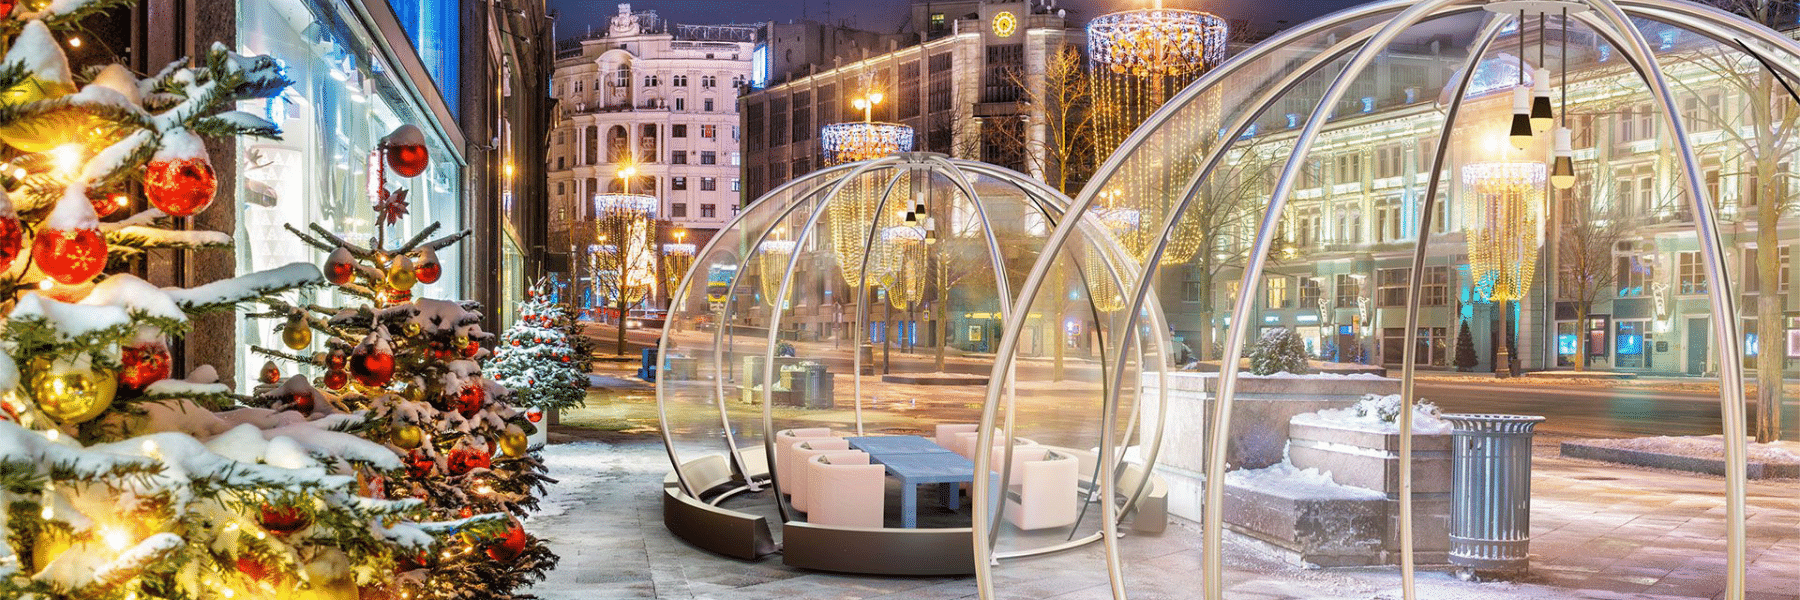 <p>Dining Igloo All-Weather Dining Pod on an outdoor street setting with table and chairs set</p> <p>Suitable for commercial or domestic garden use bringing the inside outdoors, creating show-stopping dining spaces or zen-filled yoga or pilates studio.</p>